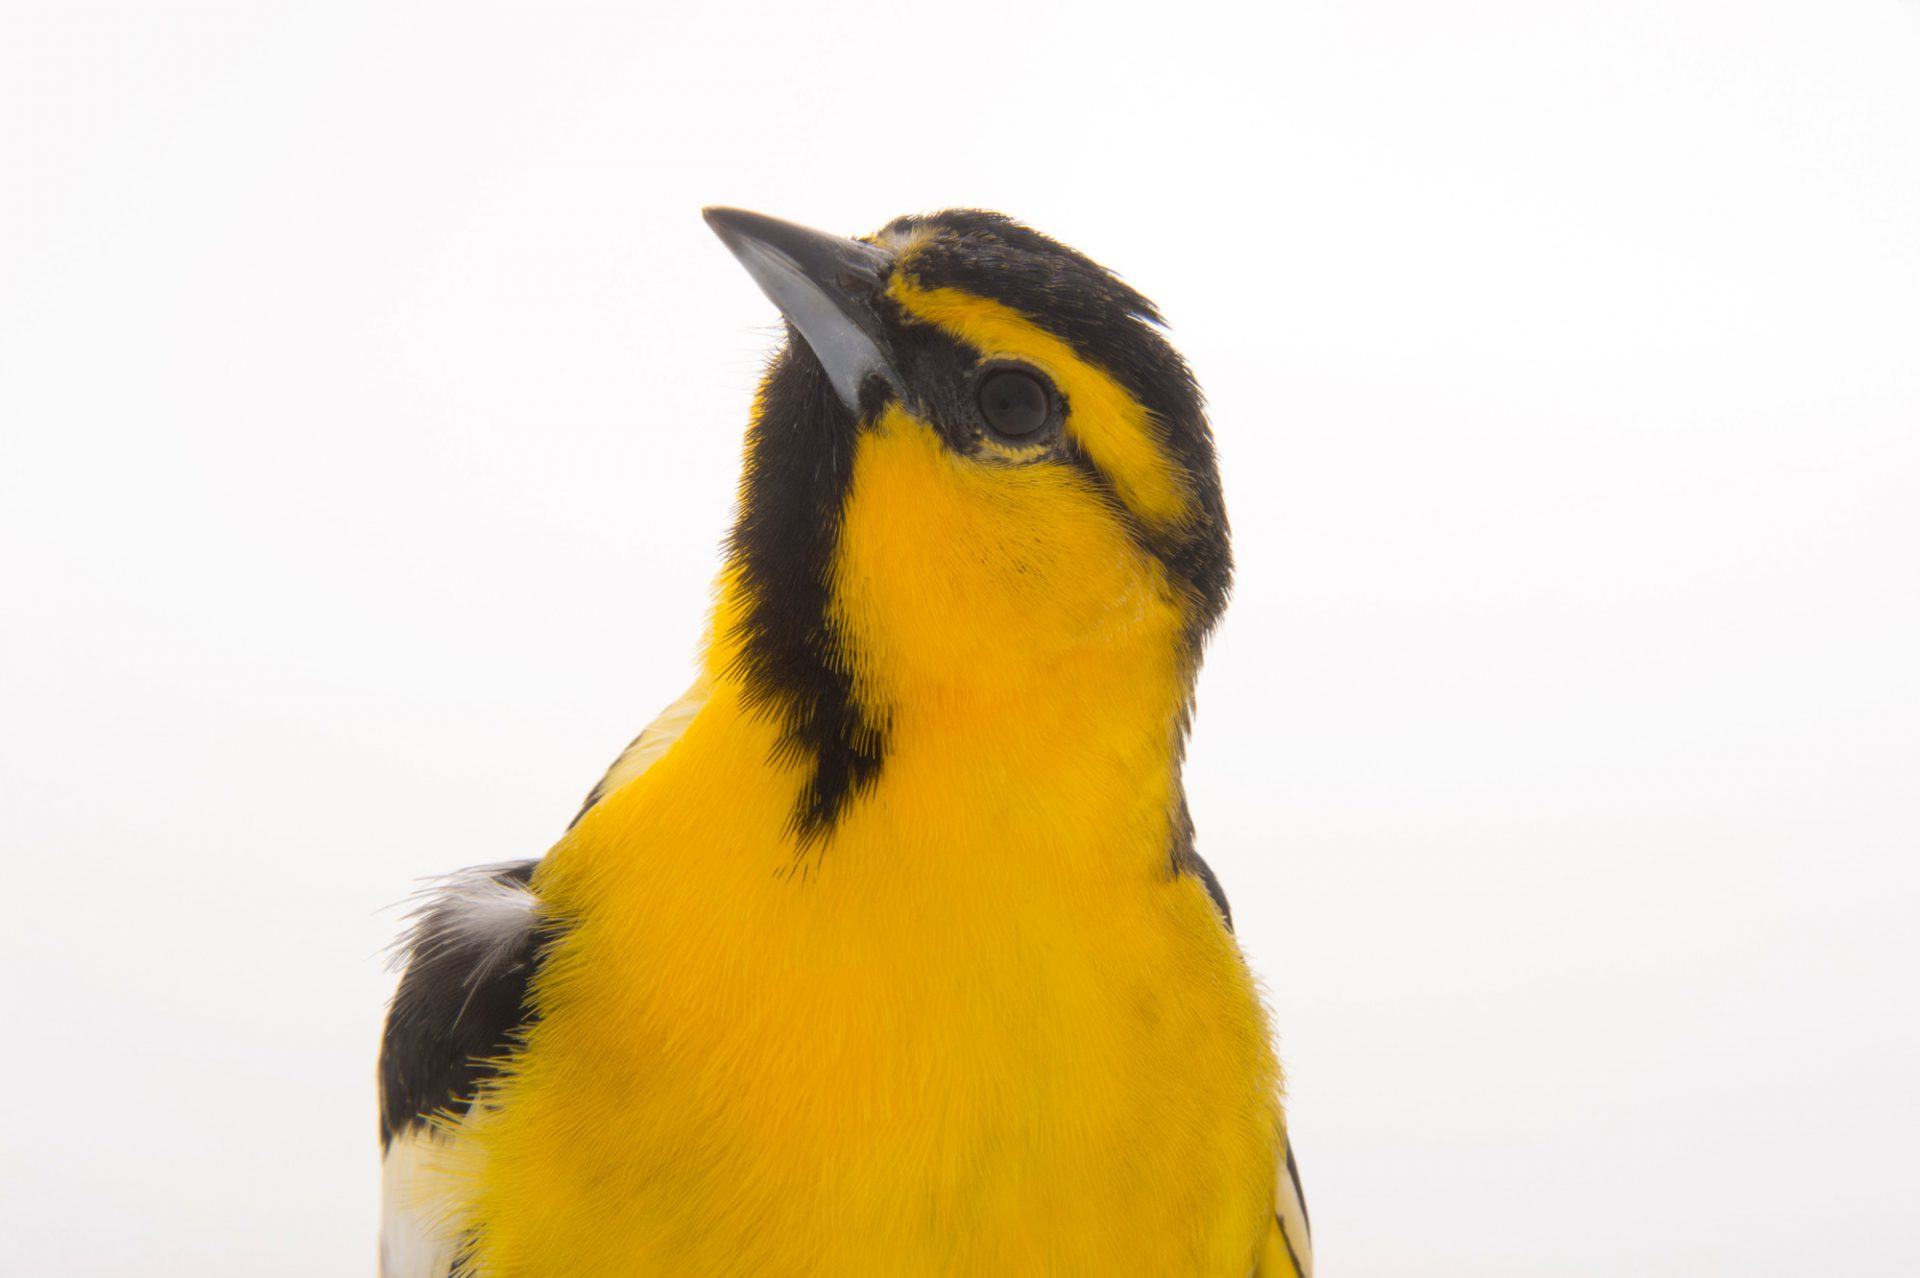 Picture of a Bullock's Oriole (Icterus bullockii) at the Sulphur Creek Nature Center.